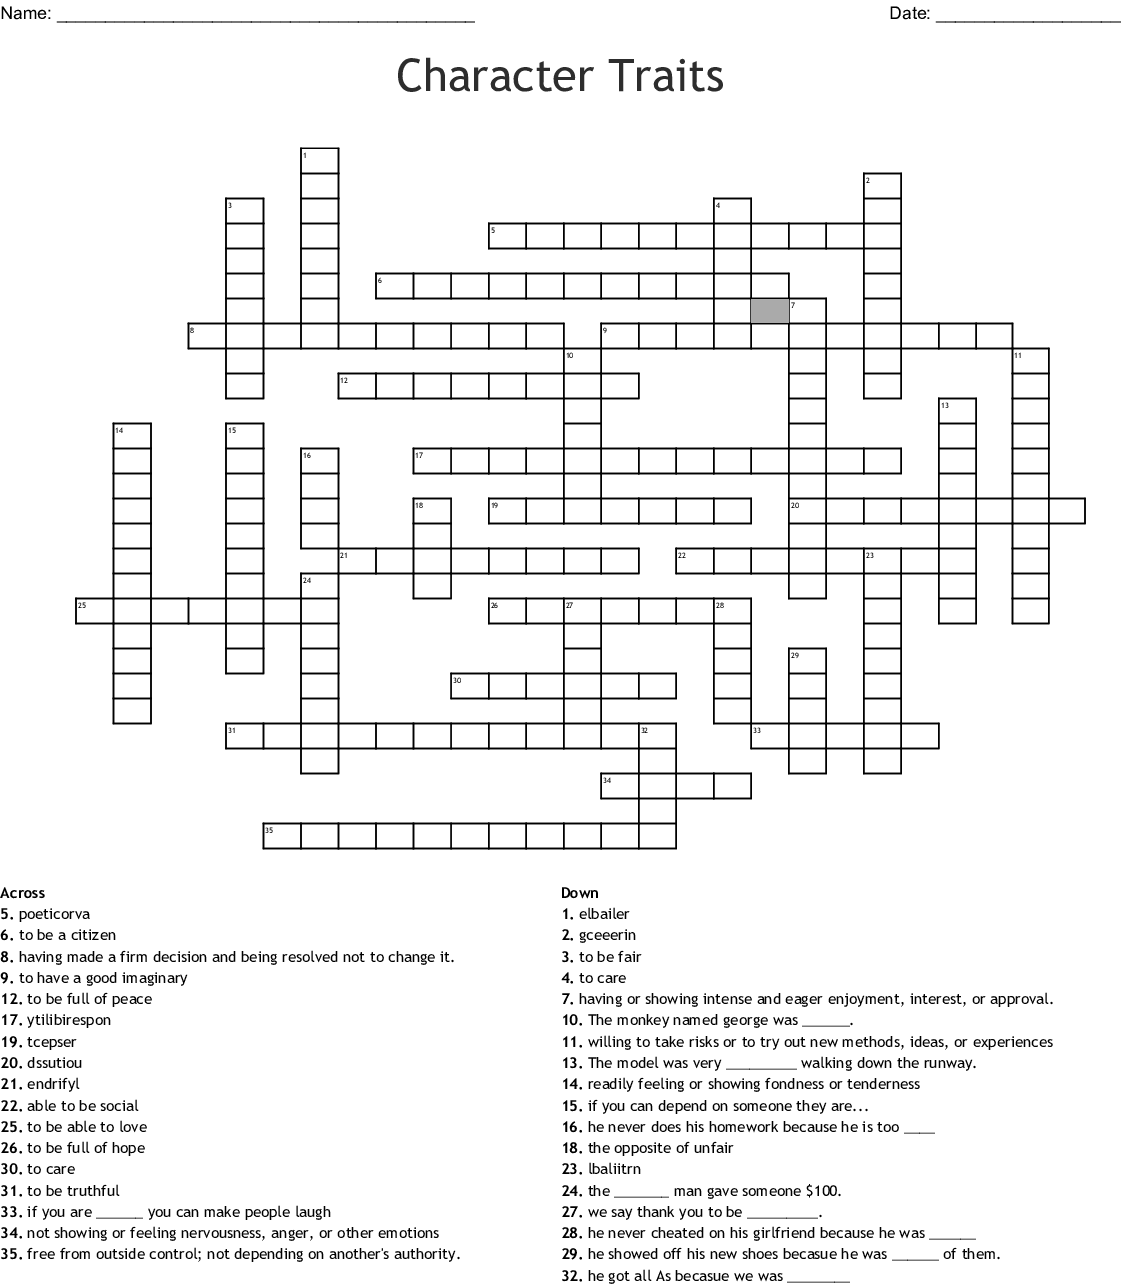 Character Traits Crossword Puzzle